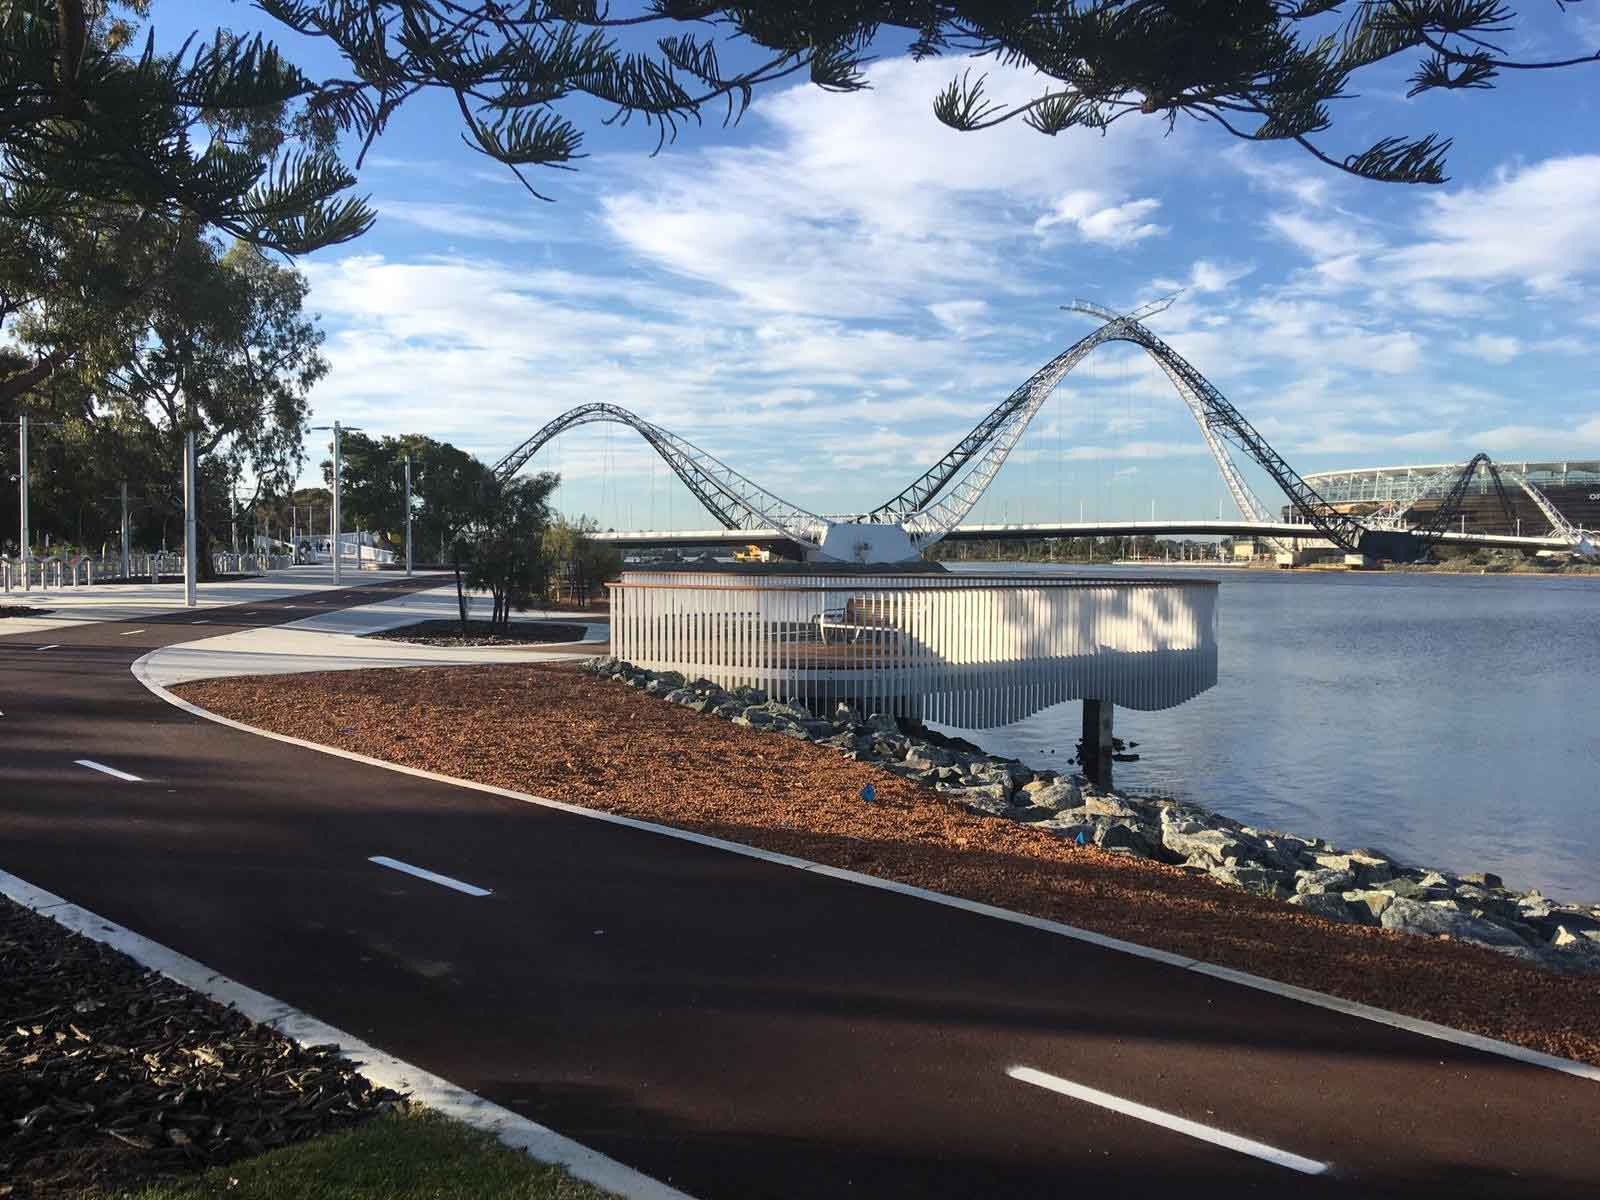 Cannings Purple Matagarup Bridge case study